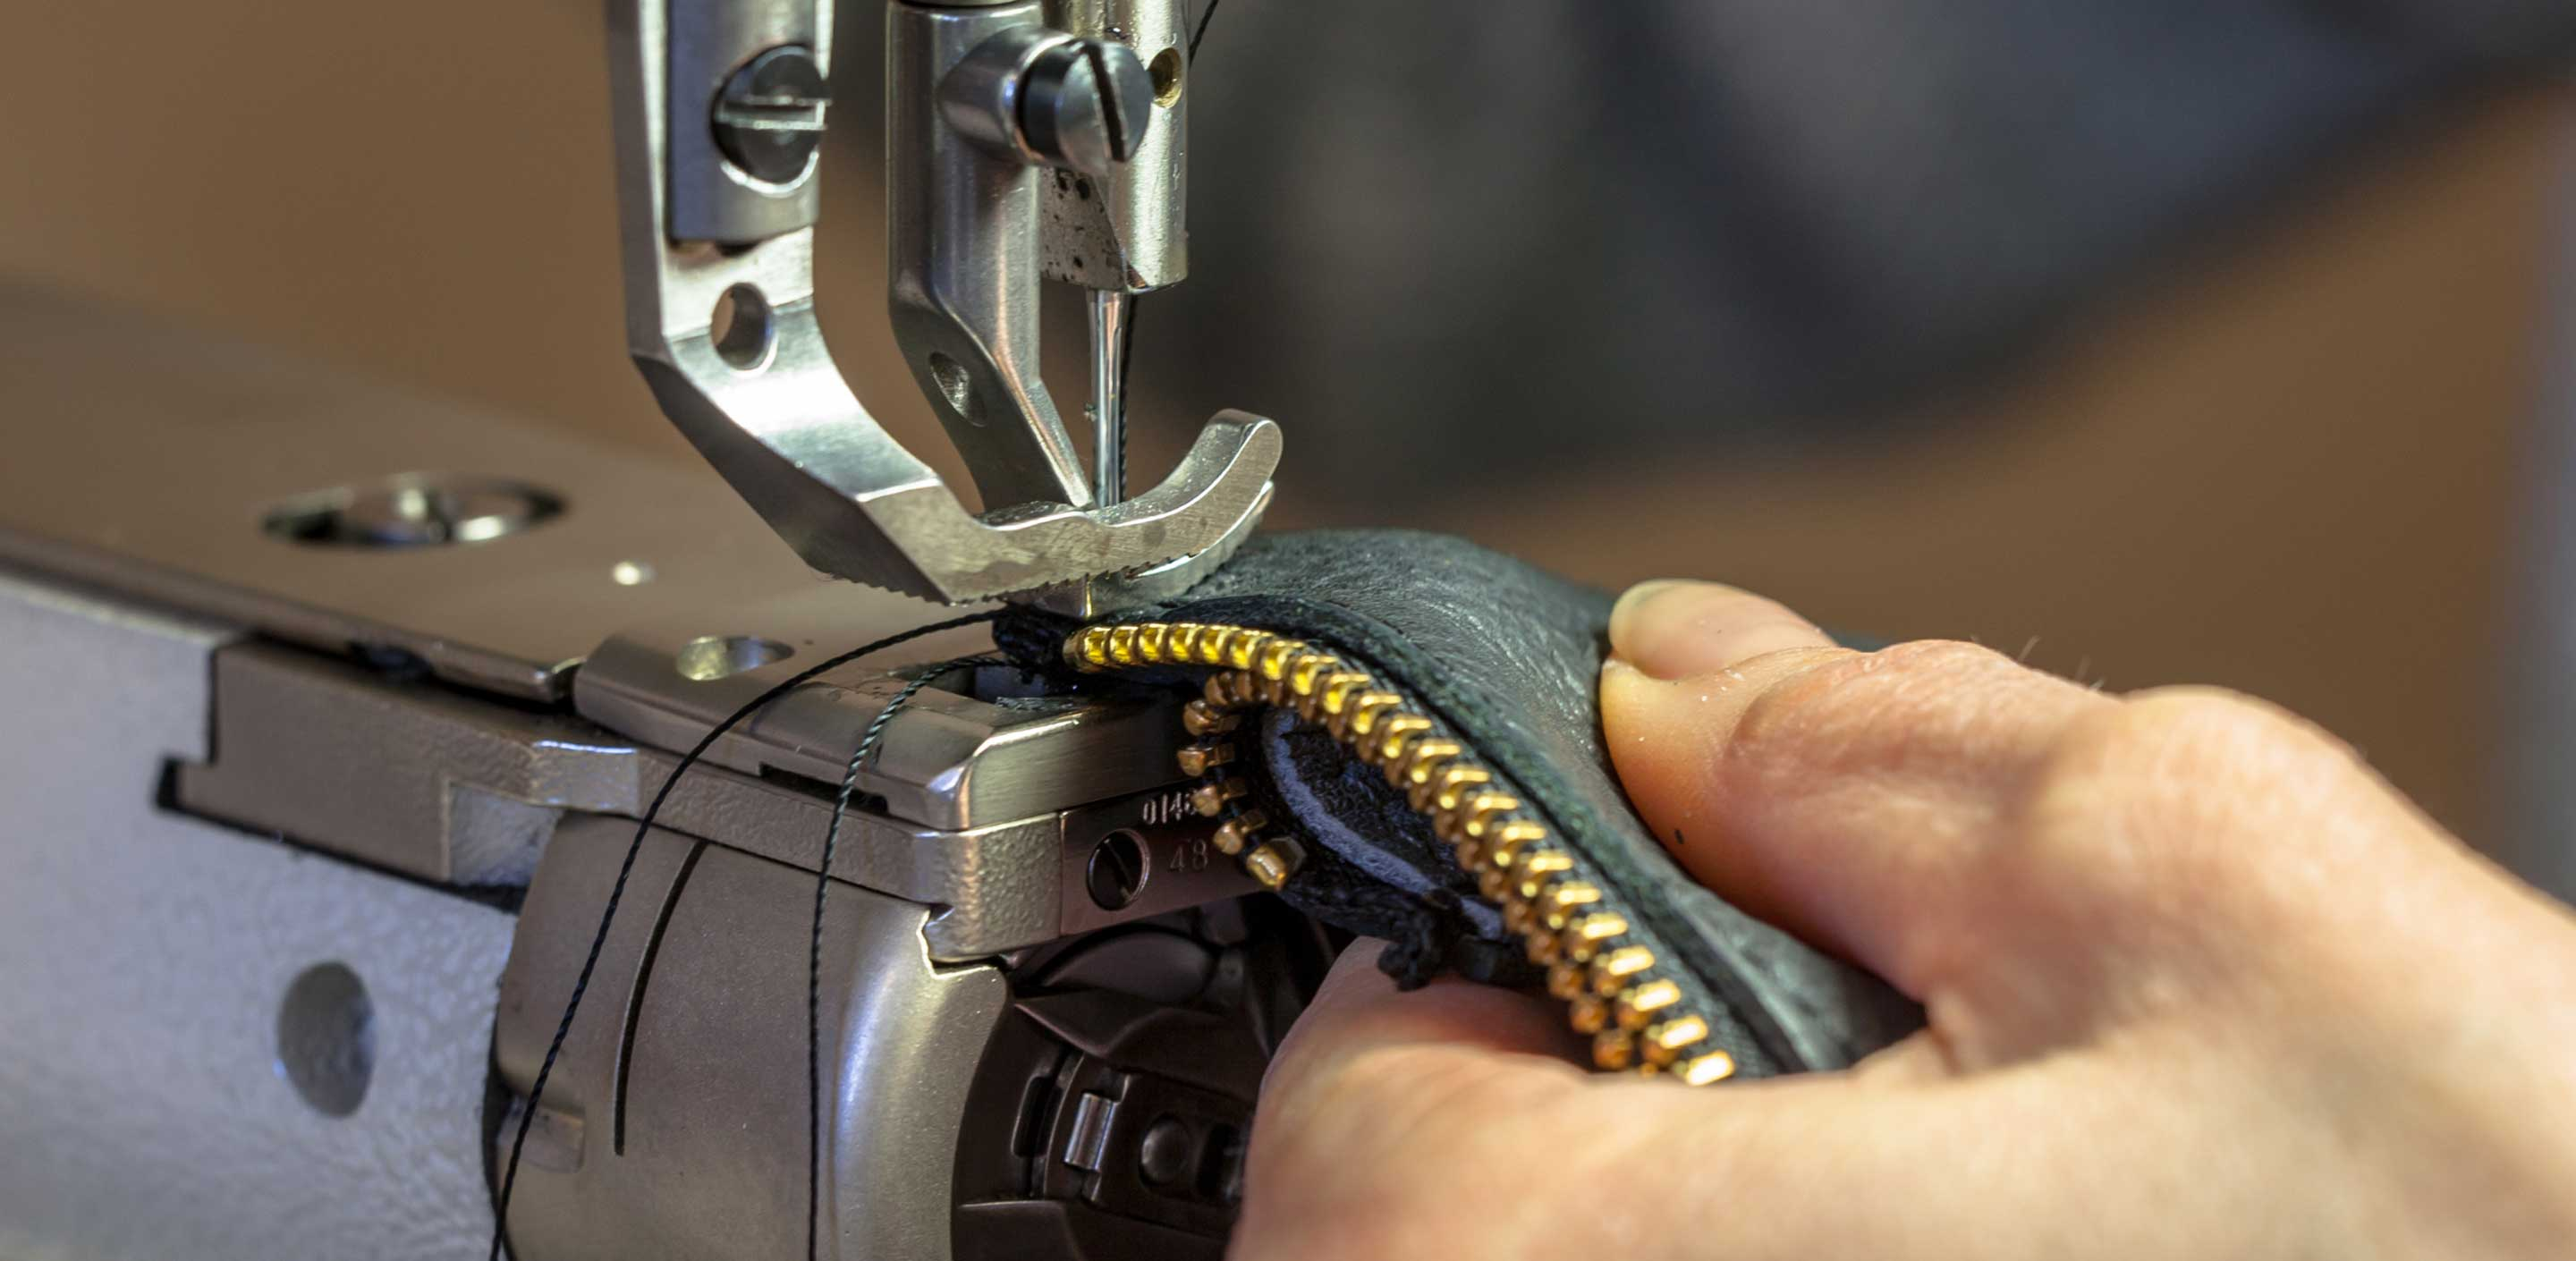 How Much Does It Cost To Replace A Zipper?